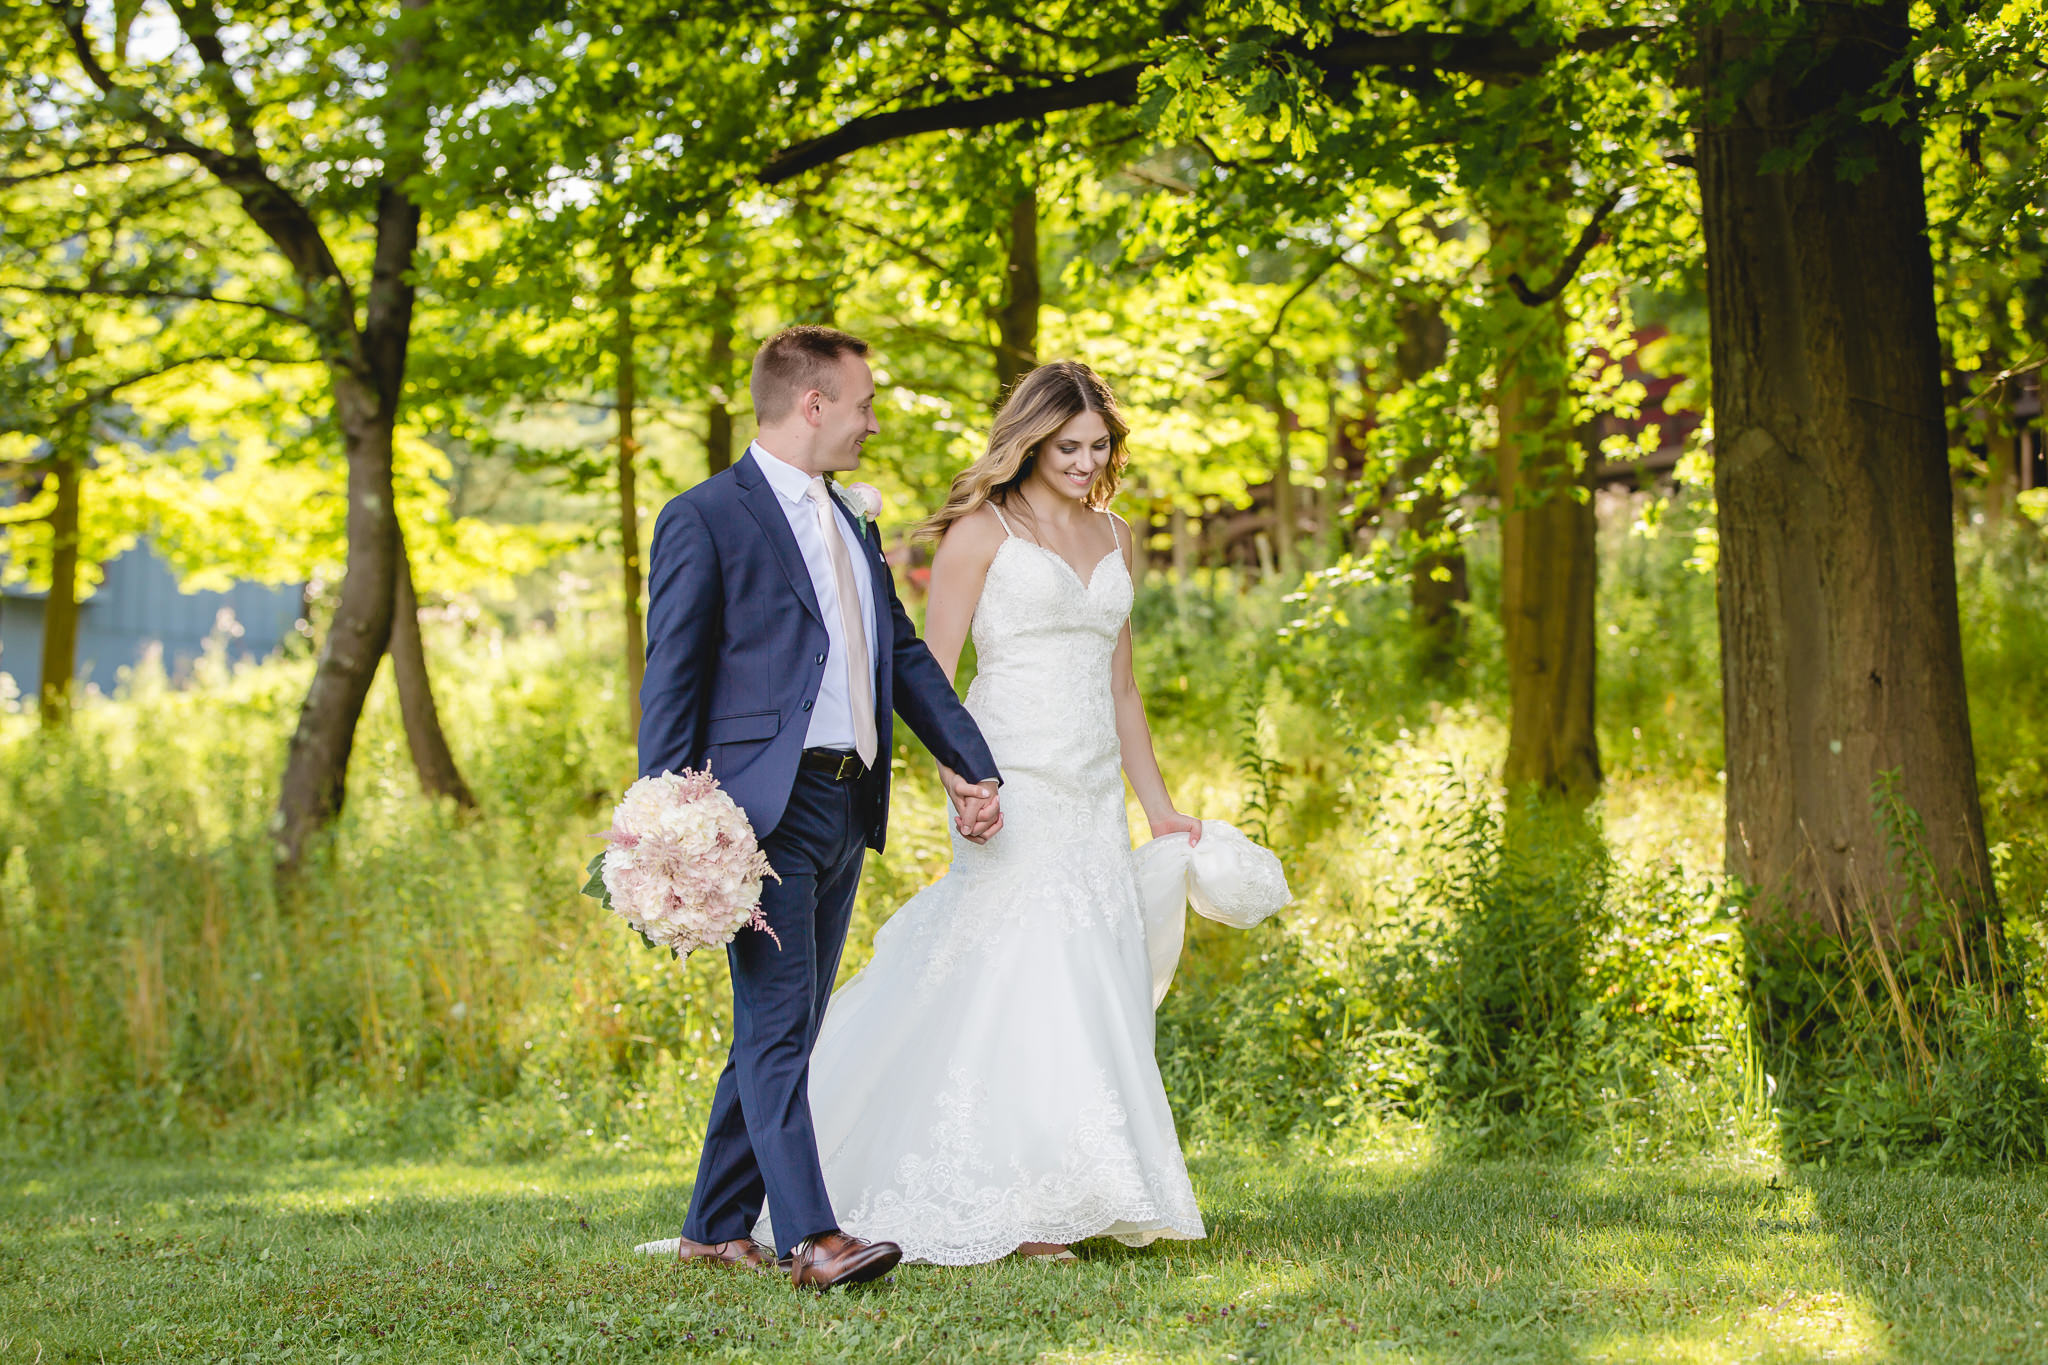 Bride and groom go for a walk after their Hidden Valley Resort wedding